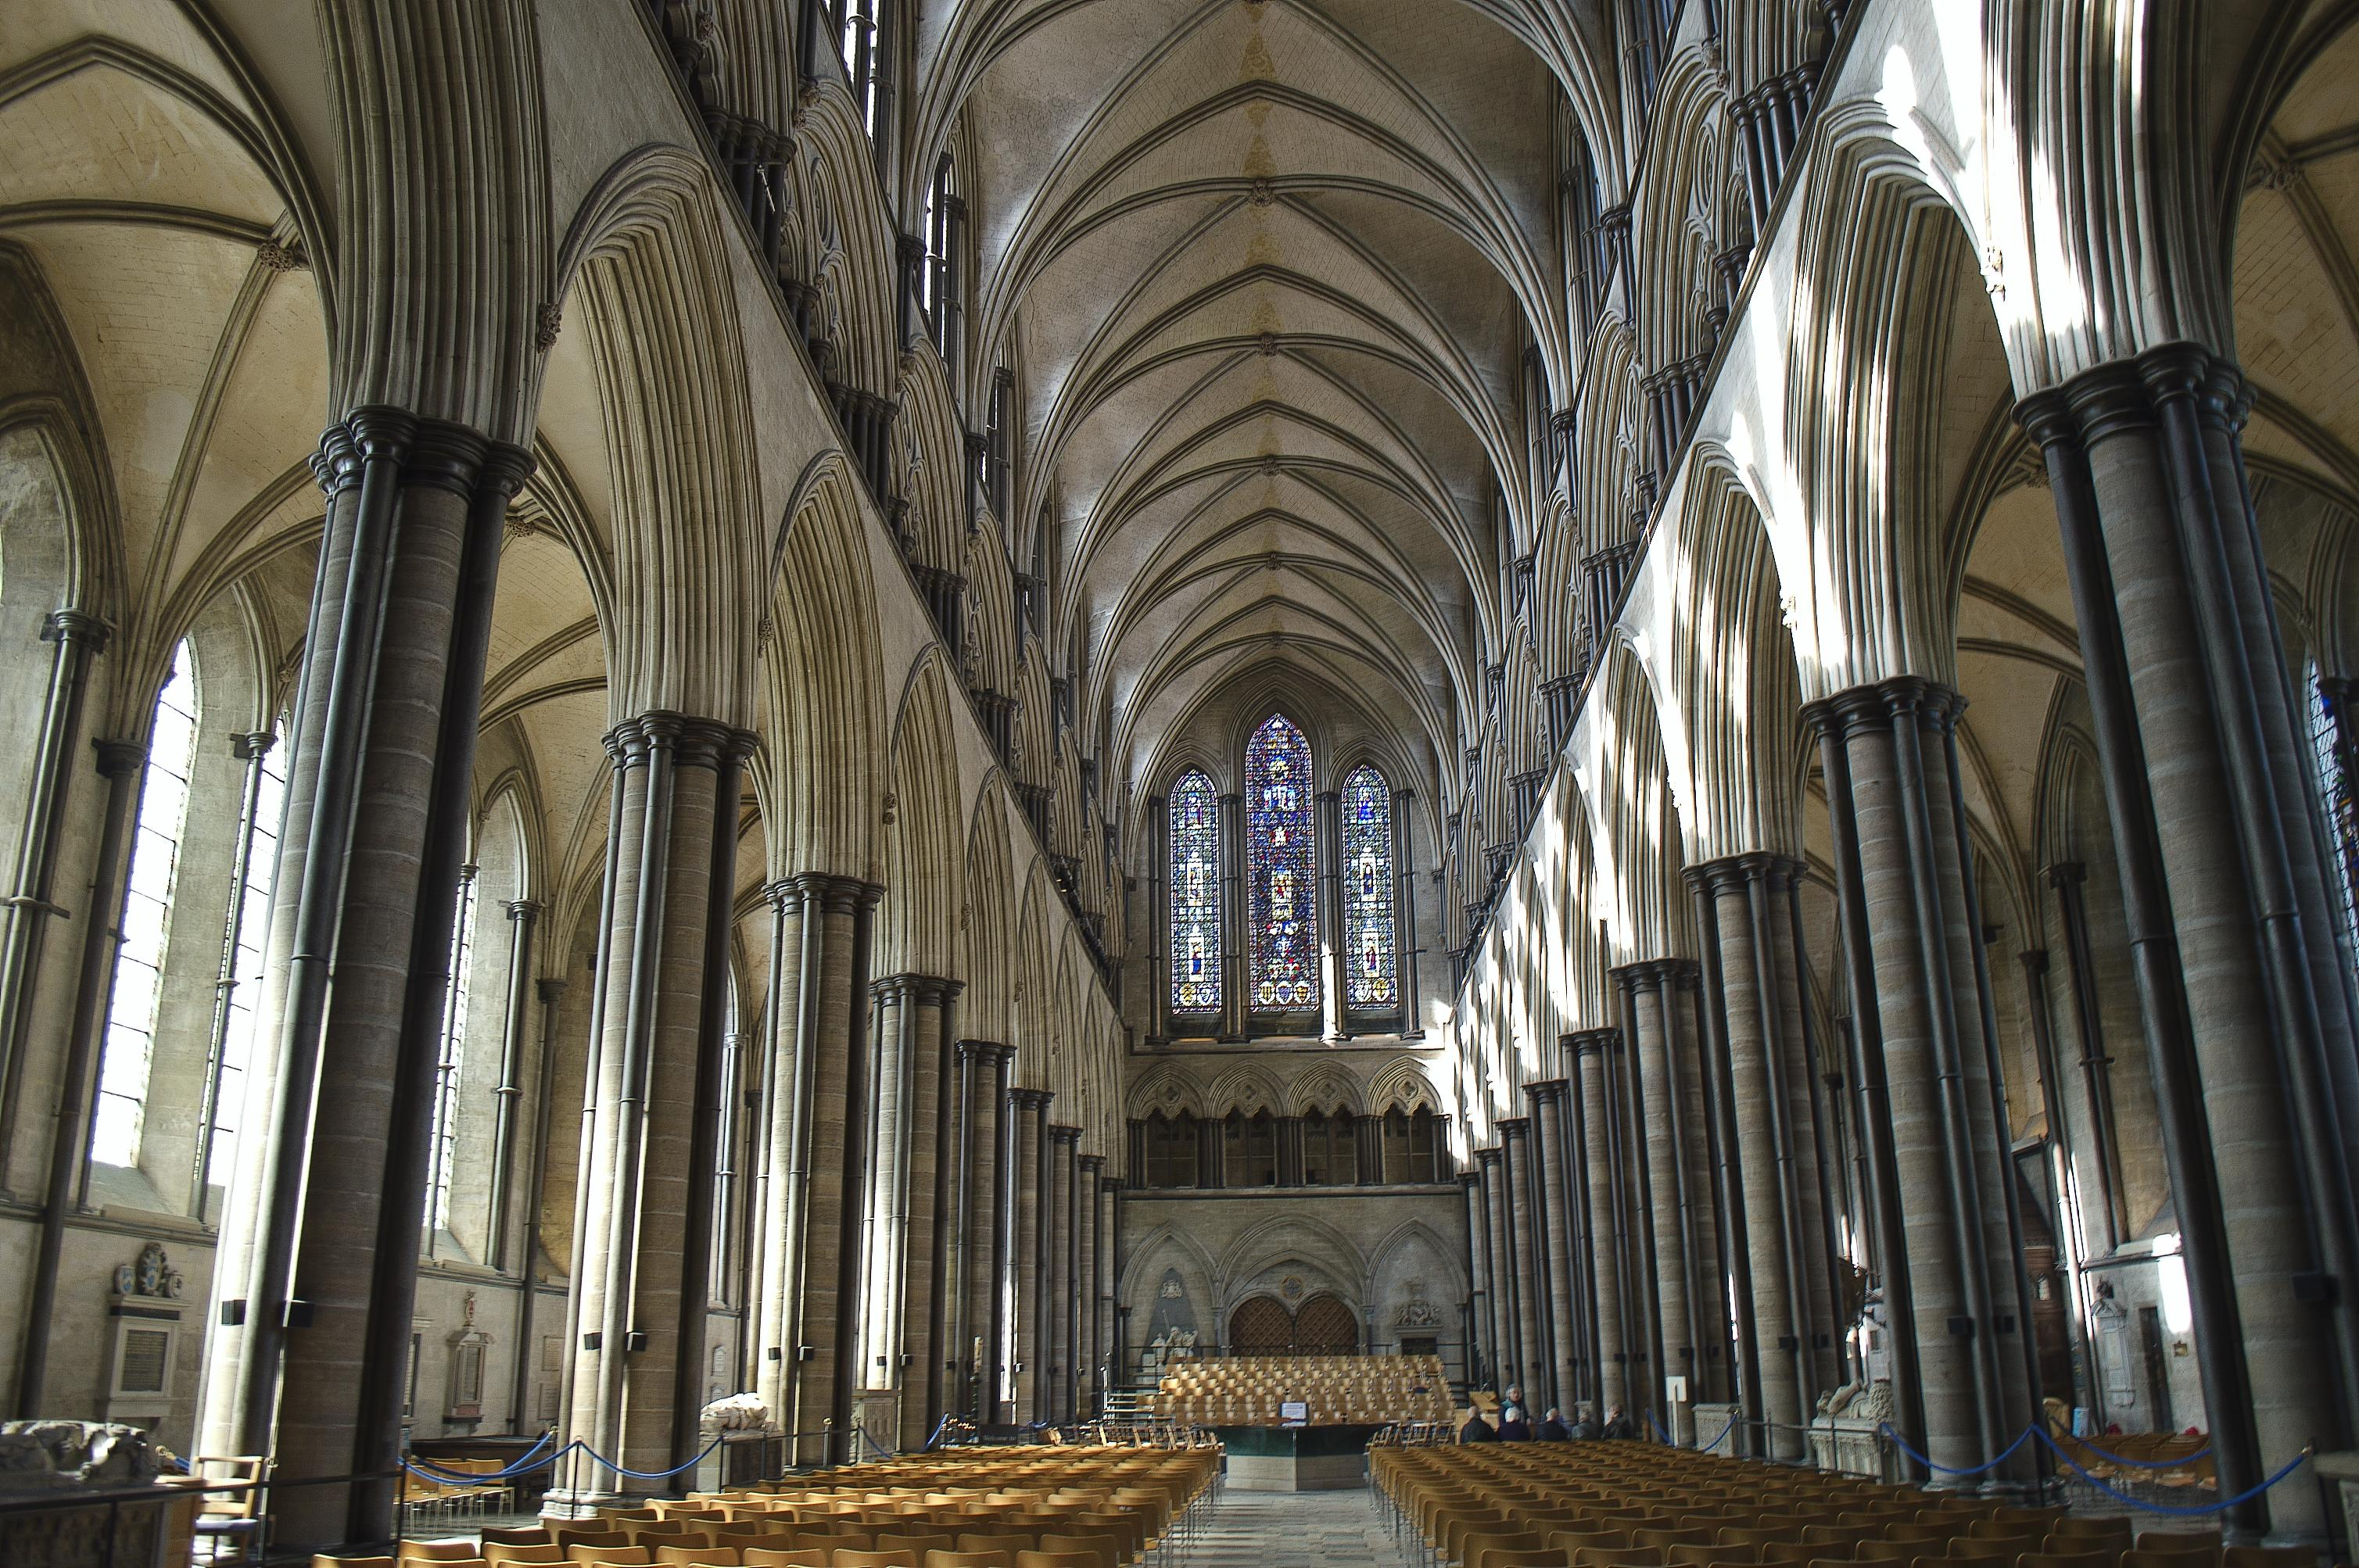 Salisbury Cathedral, Wiltshire (The Nave) | Flickr - Photo ...